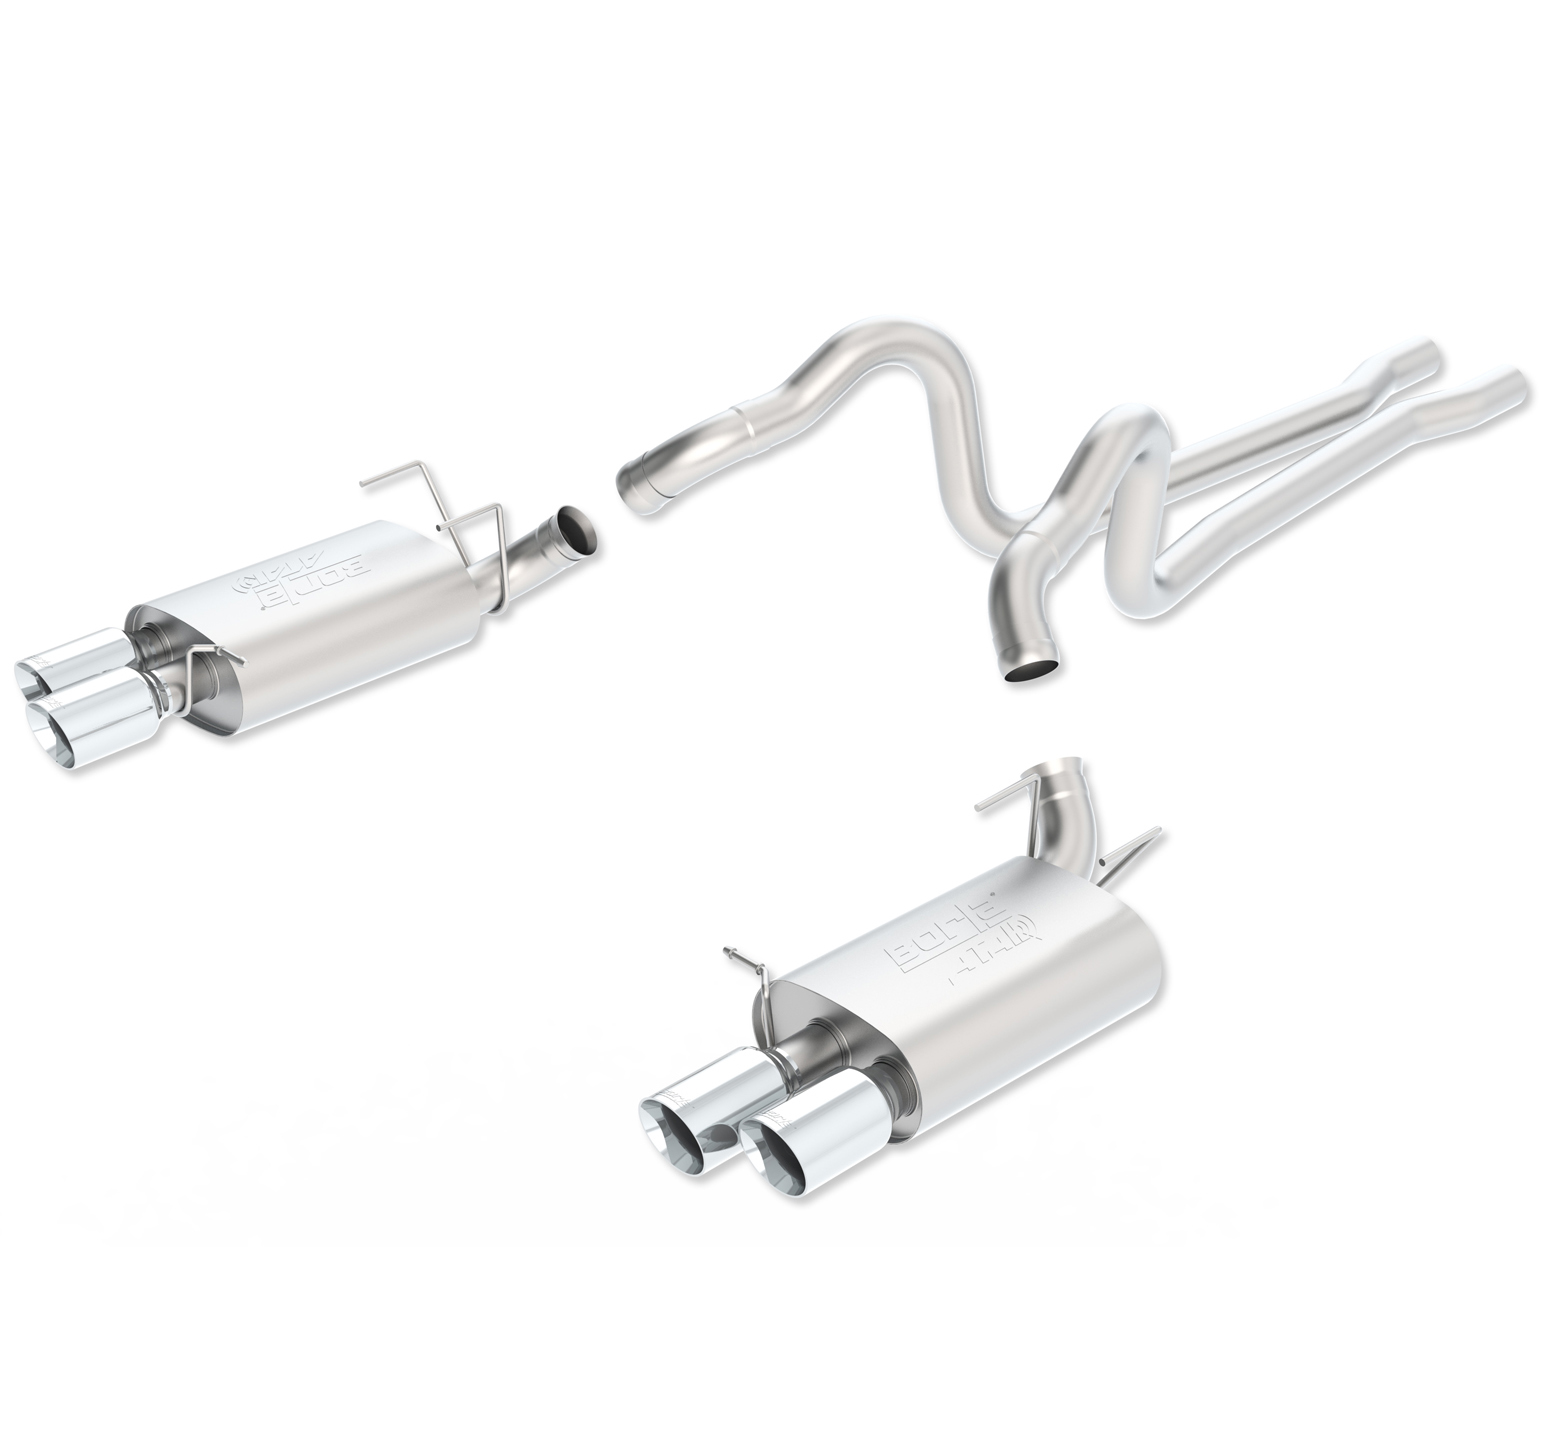 2013 Mustang GT 500 Stainless Steel Exhaust System Bor-140501